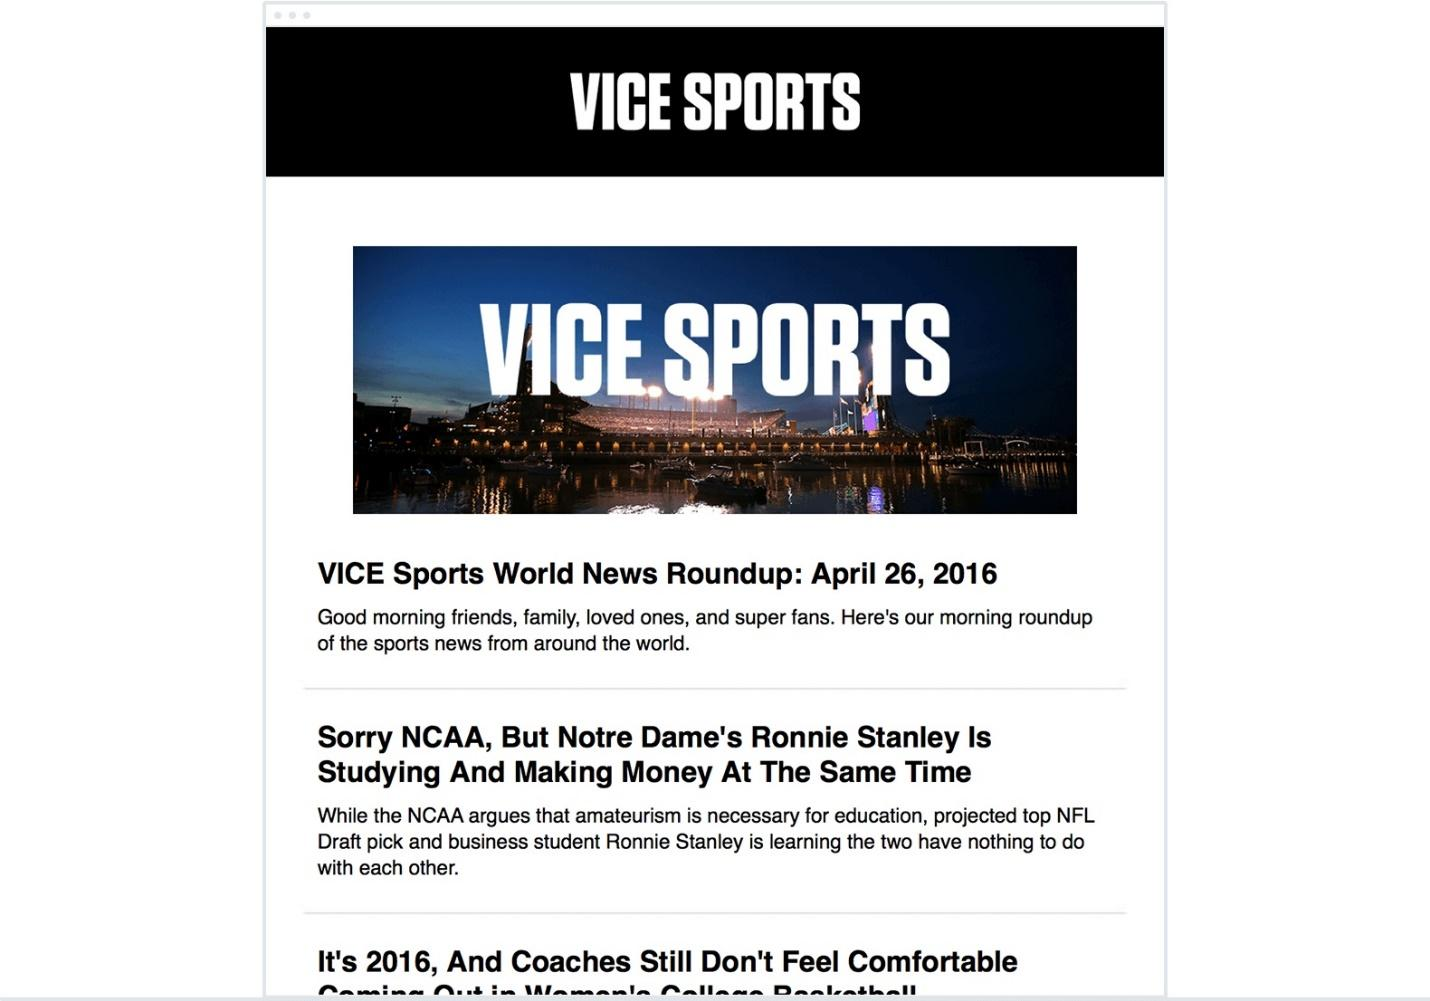 Take this example from Vice Sports—they include a variety of information that their readers may find interesting. What they don't do is give it all away, enticing the reader to click the links to learn more.